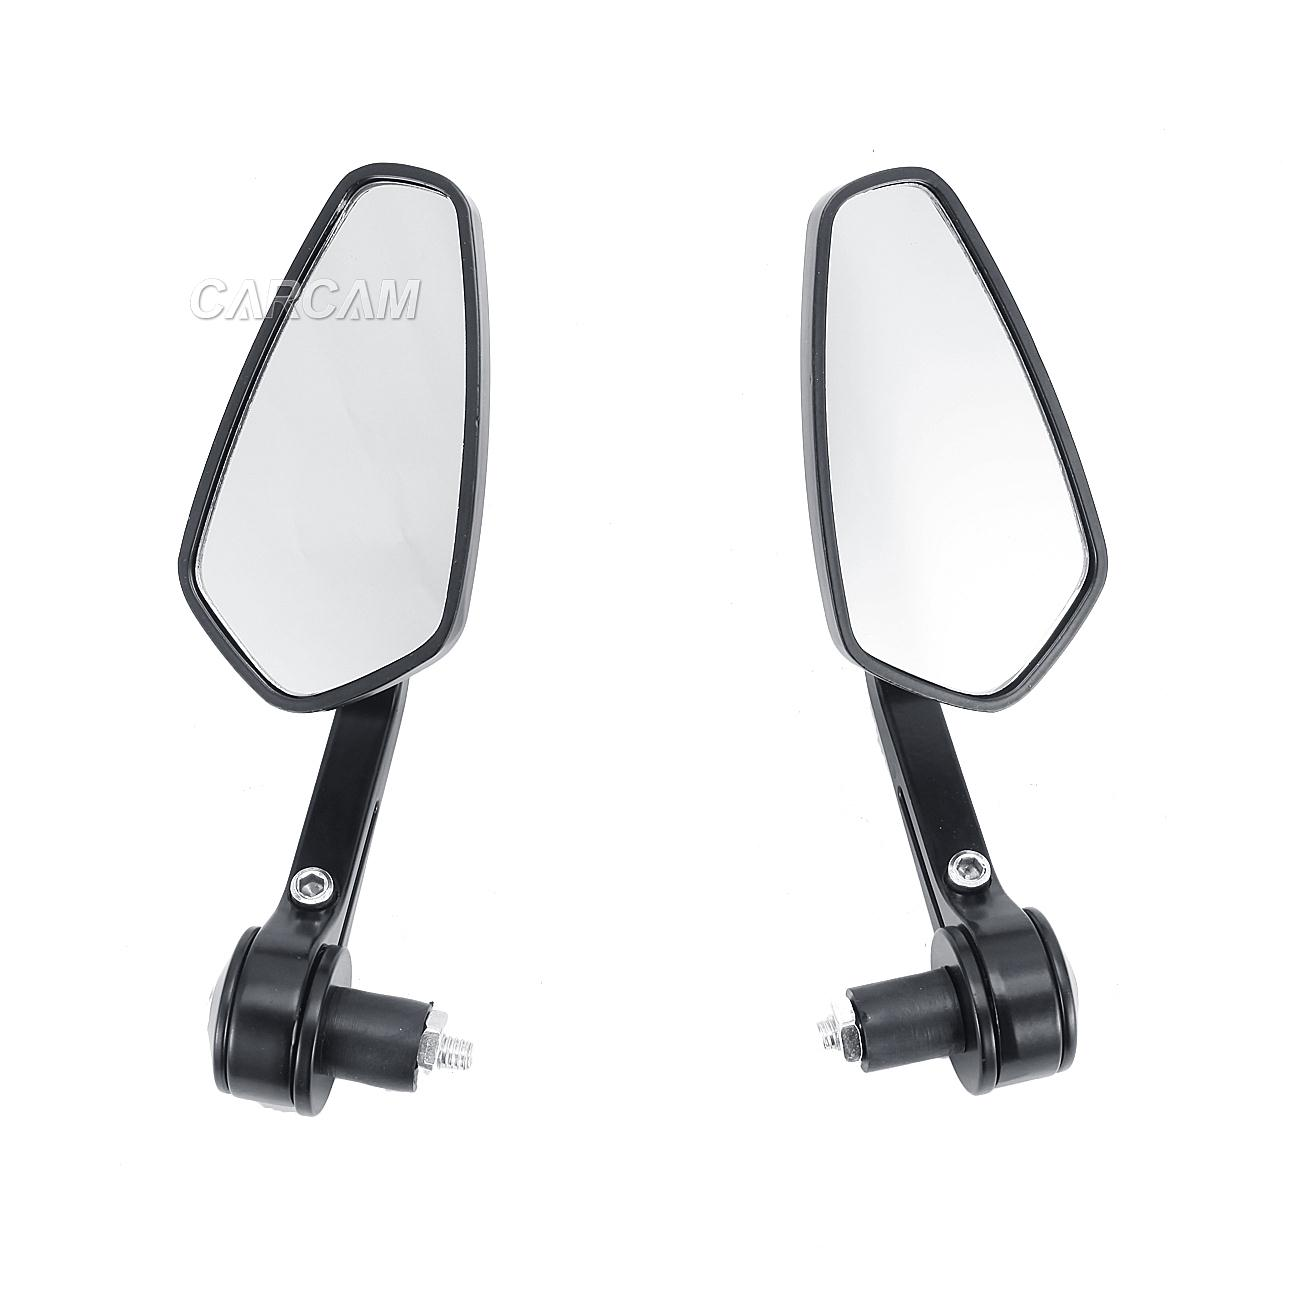 Cnc bar end side mirrors for ducati monster 620 696 750 for Mirror 750 x 900